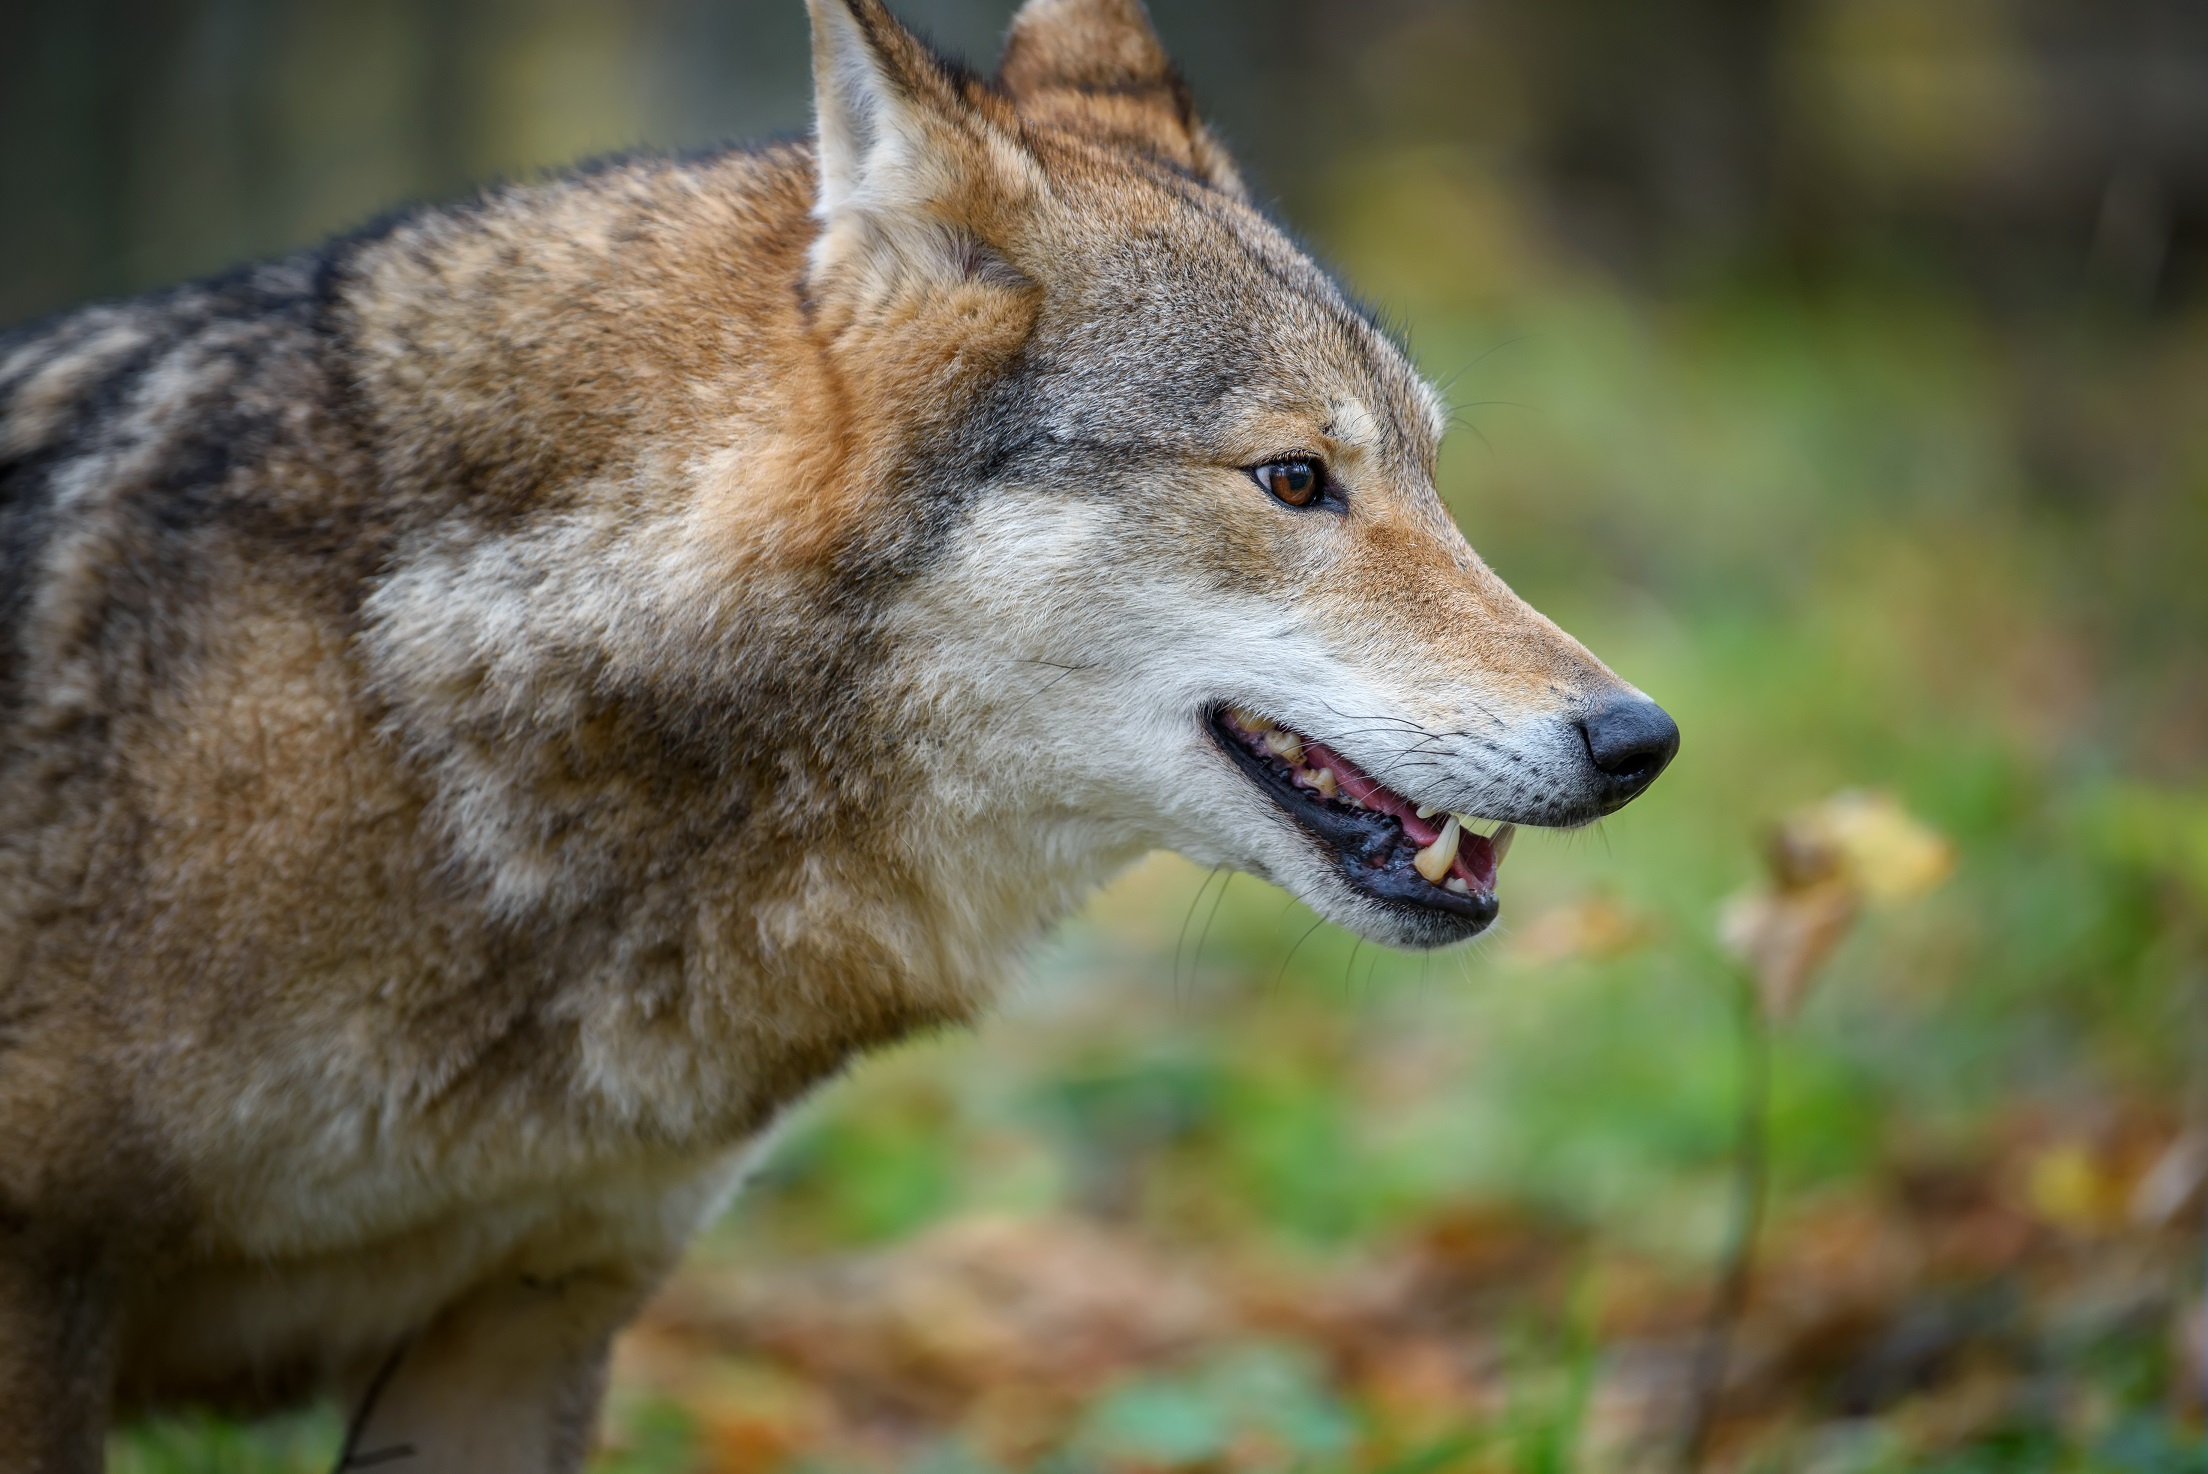 close up portrait wolf in autumn forest background FS4AFFD #новости Рустави